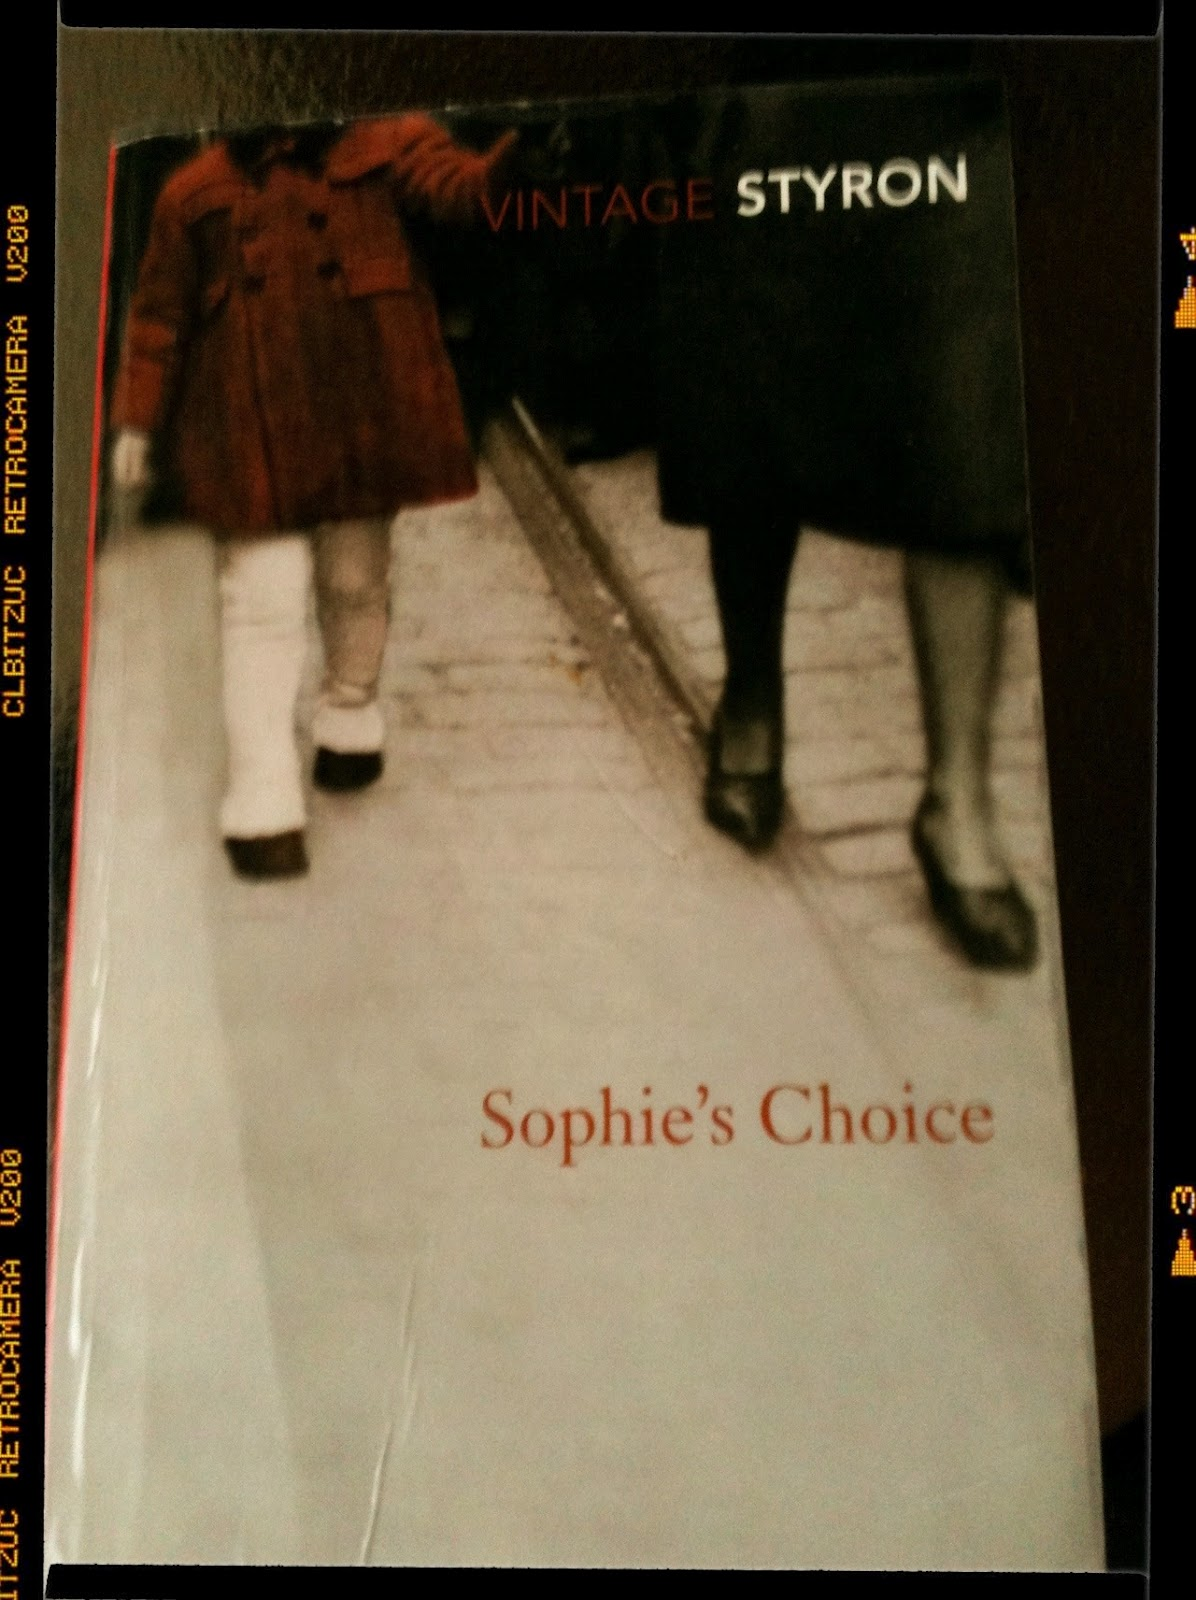 sophies choice william styron essay 1 sophie's choice summary and analysis (like sparknotes freebooknotescom link: description: find all available study guides and summaries for sophie's choice by william styron if there is a sparknotes, shmoop, or cliff notes guide, we will have it listed here 2 sophie's choice.